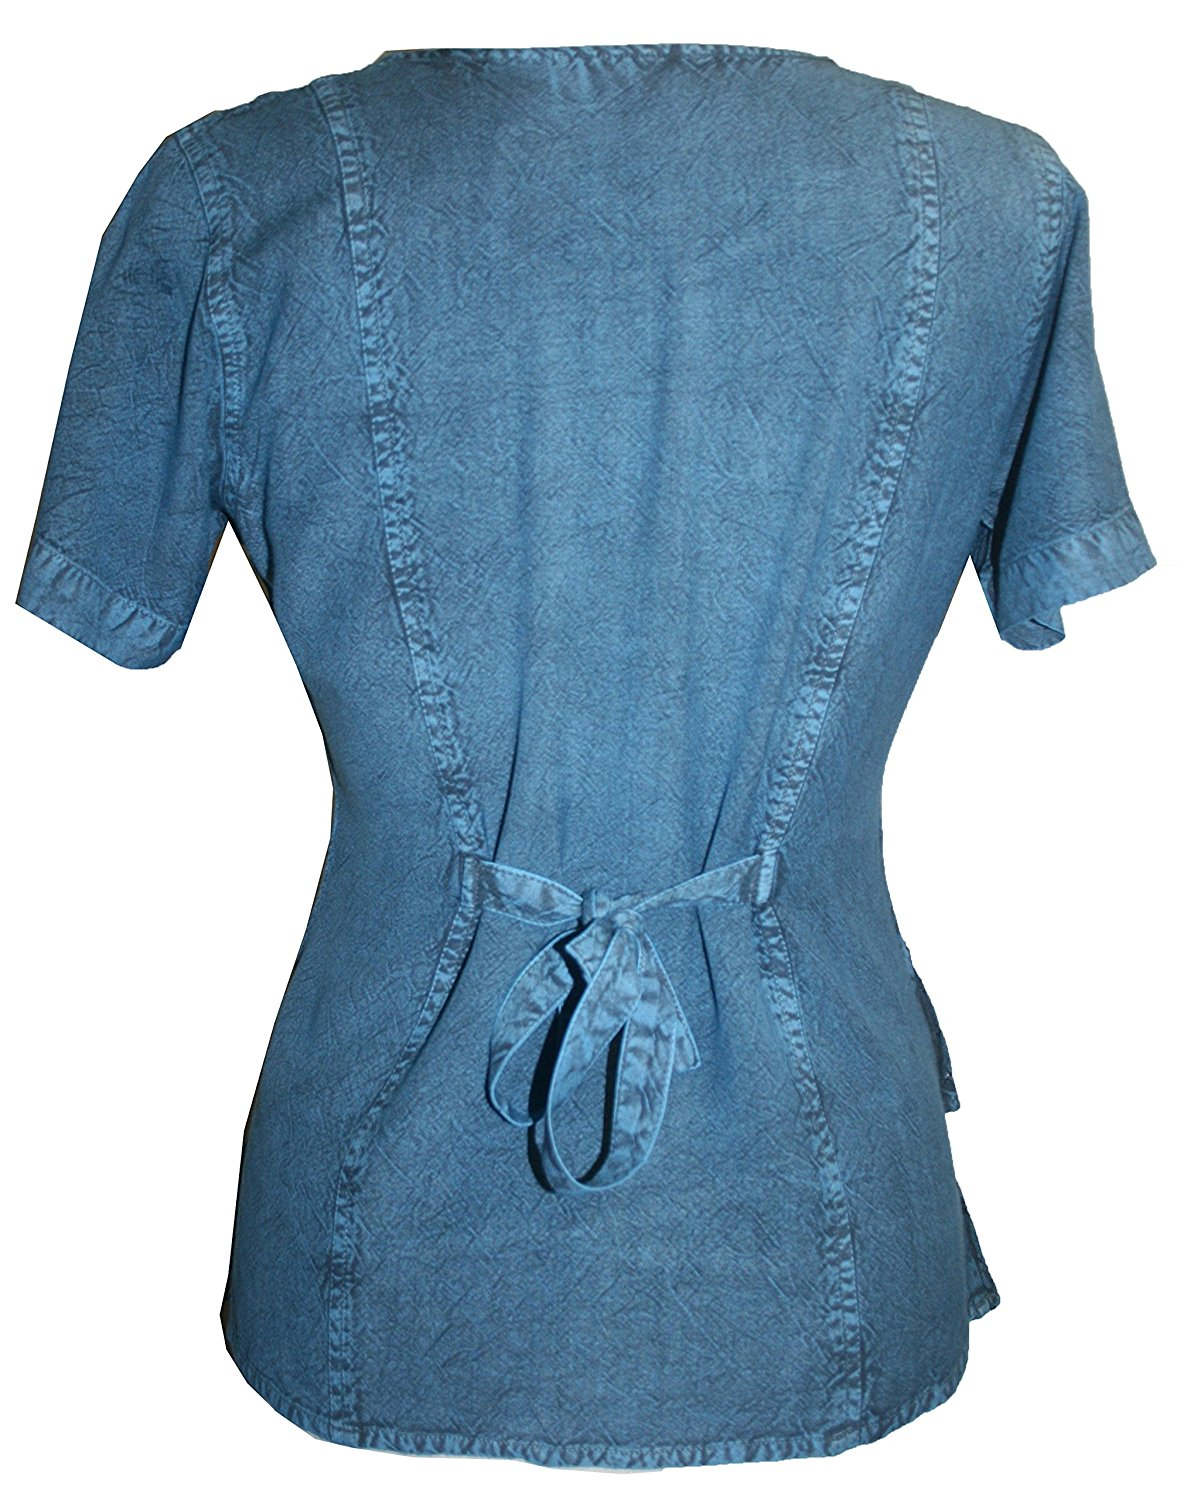 Medieval Renaissance Gypsy Ruffle Cross Blouse - Agan Traders, Blue